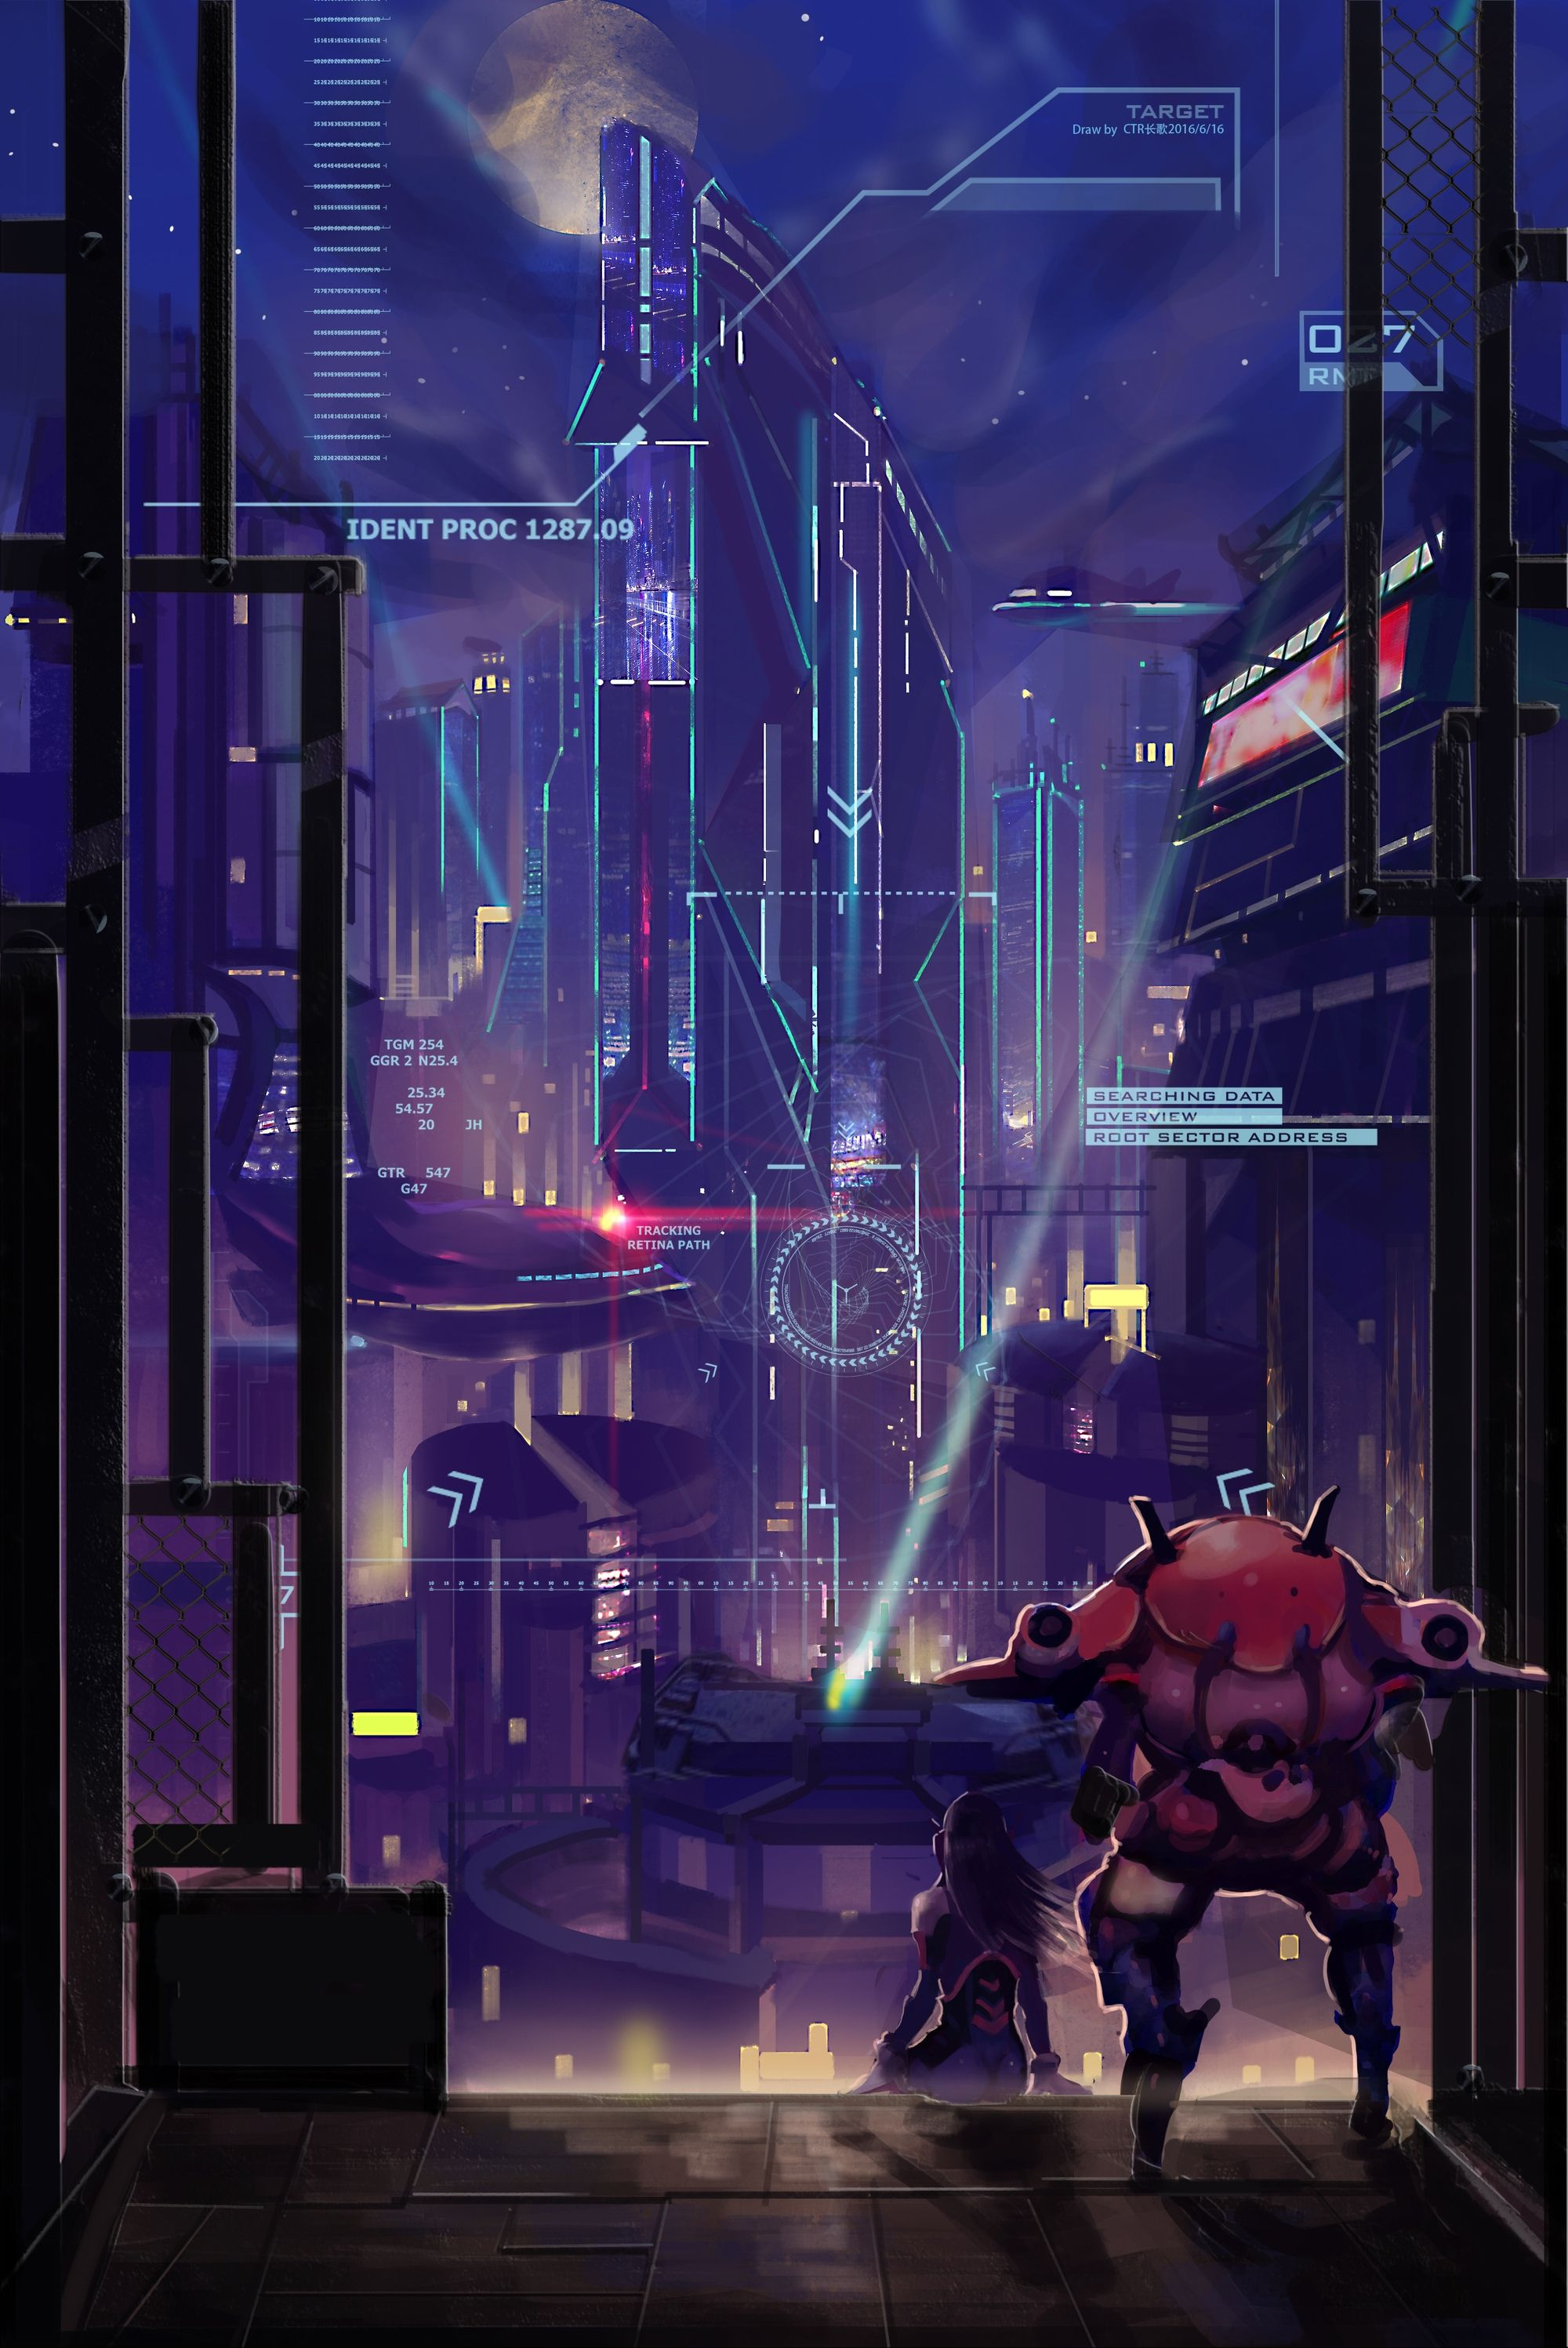 Overwatch D Va Futuristic City Artwork Back View Sci